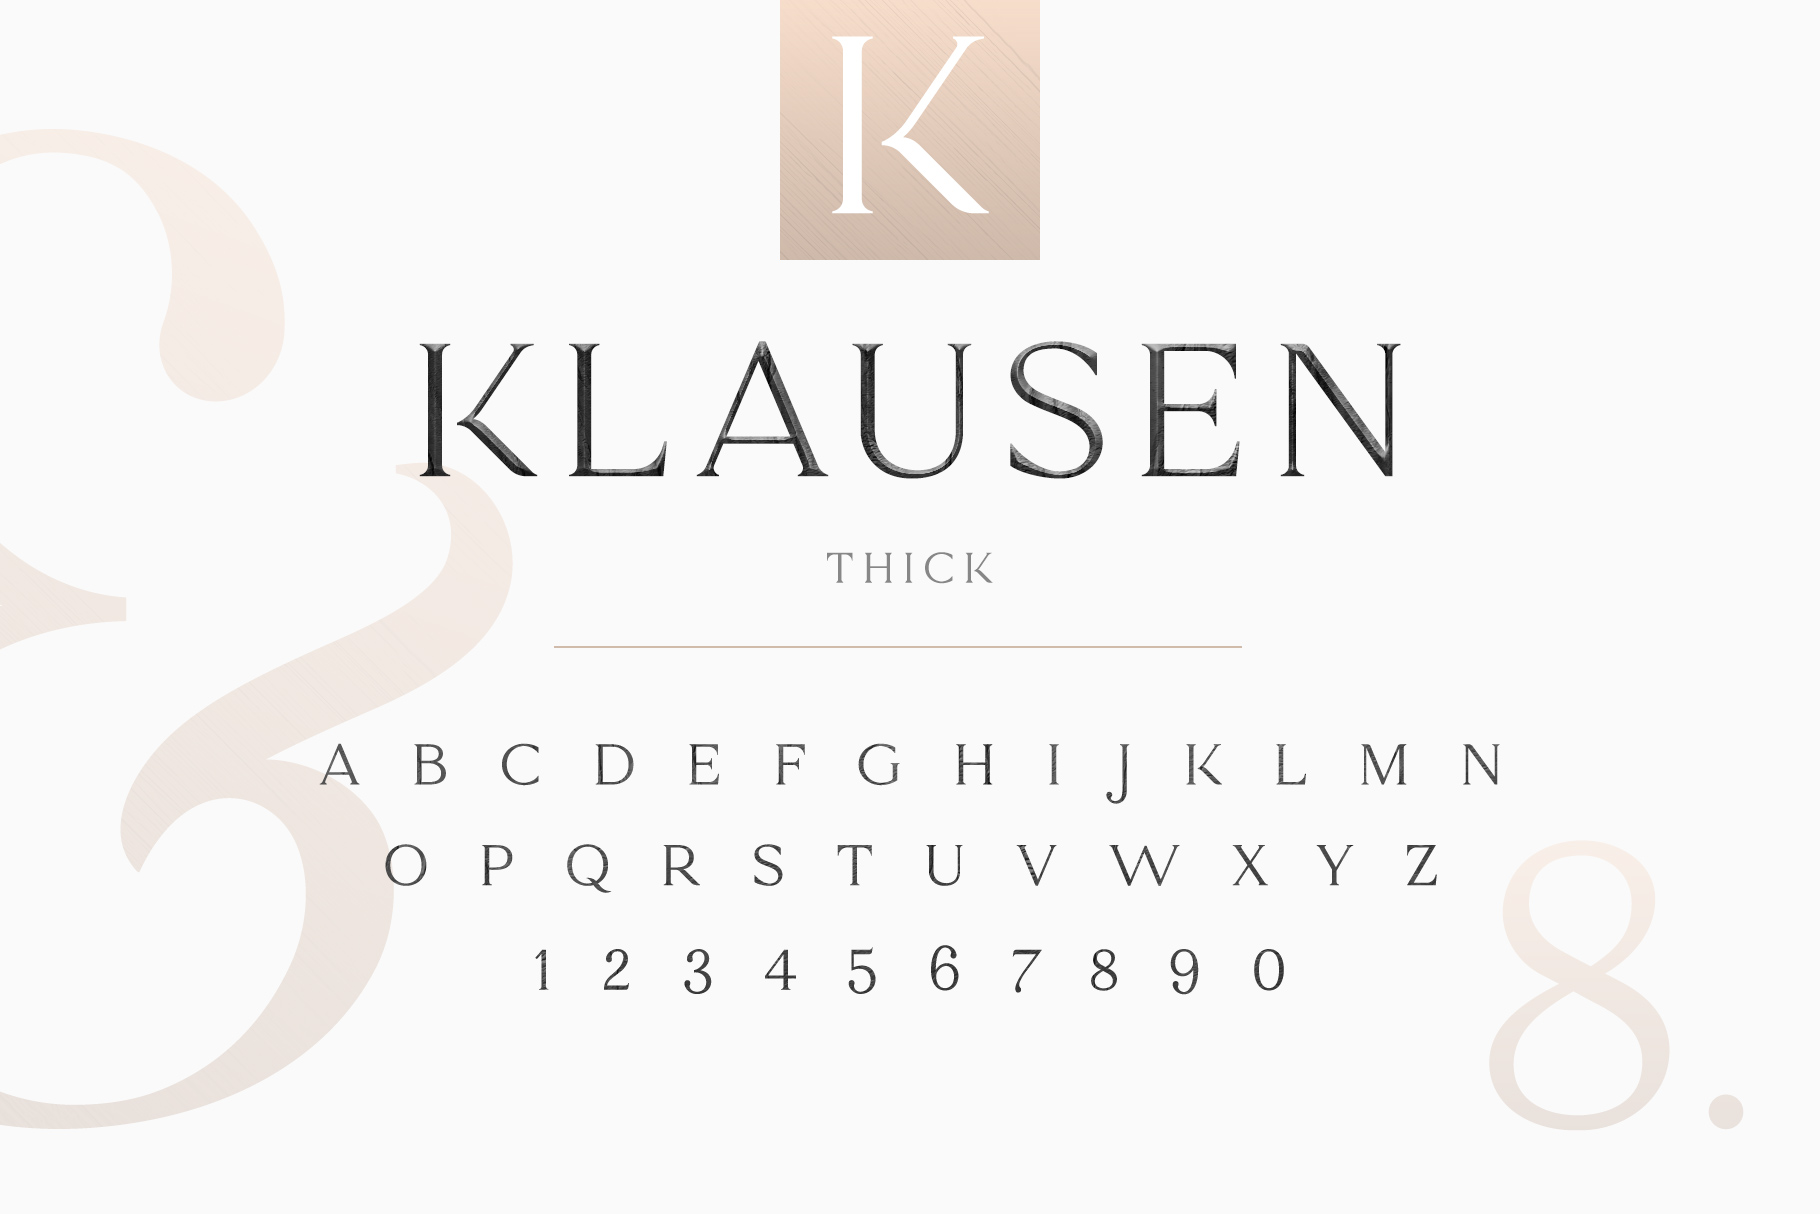 Klausen - Stylish All Caps Serif